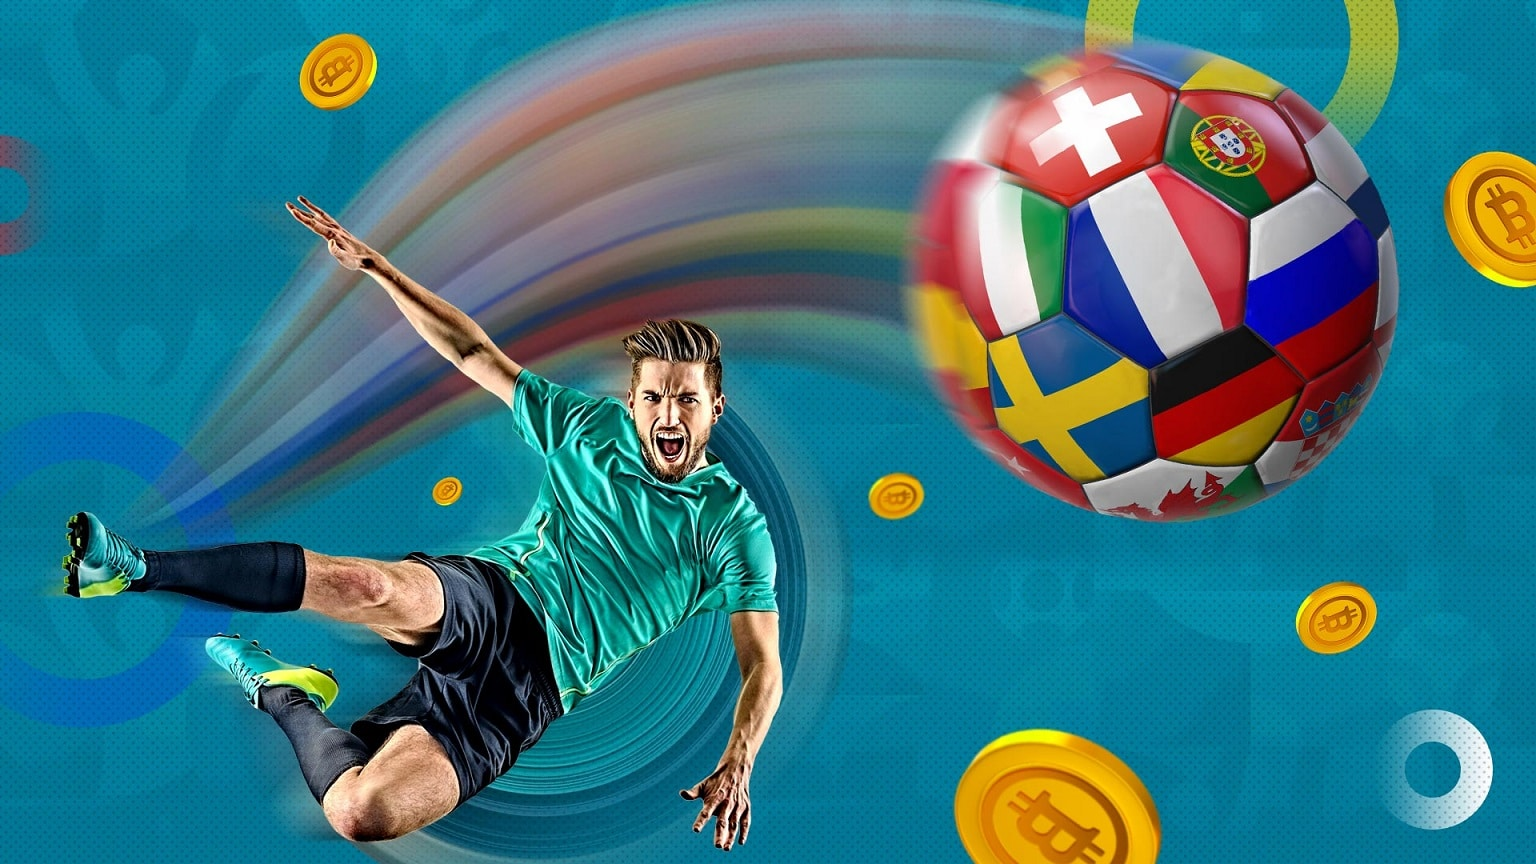 Euromania 2020 at 1xBit: Support Your National Team and Win Crypto!